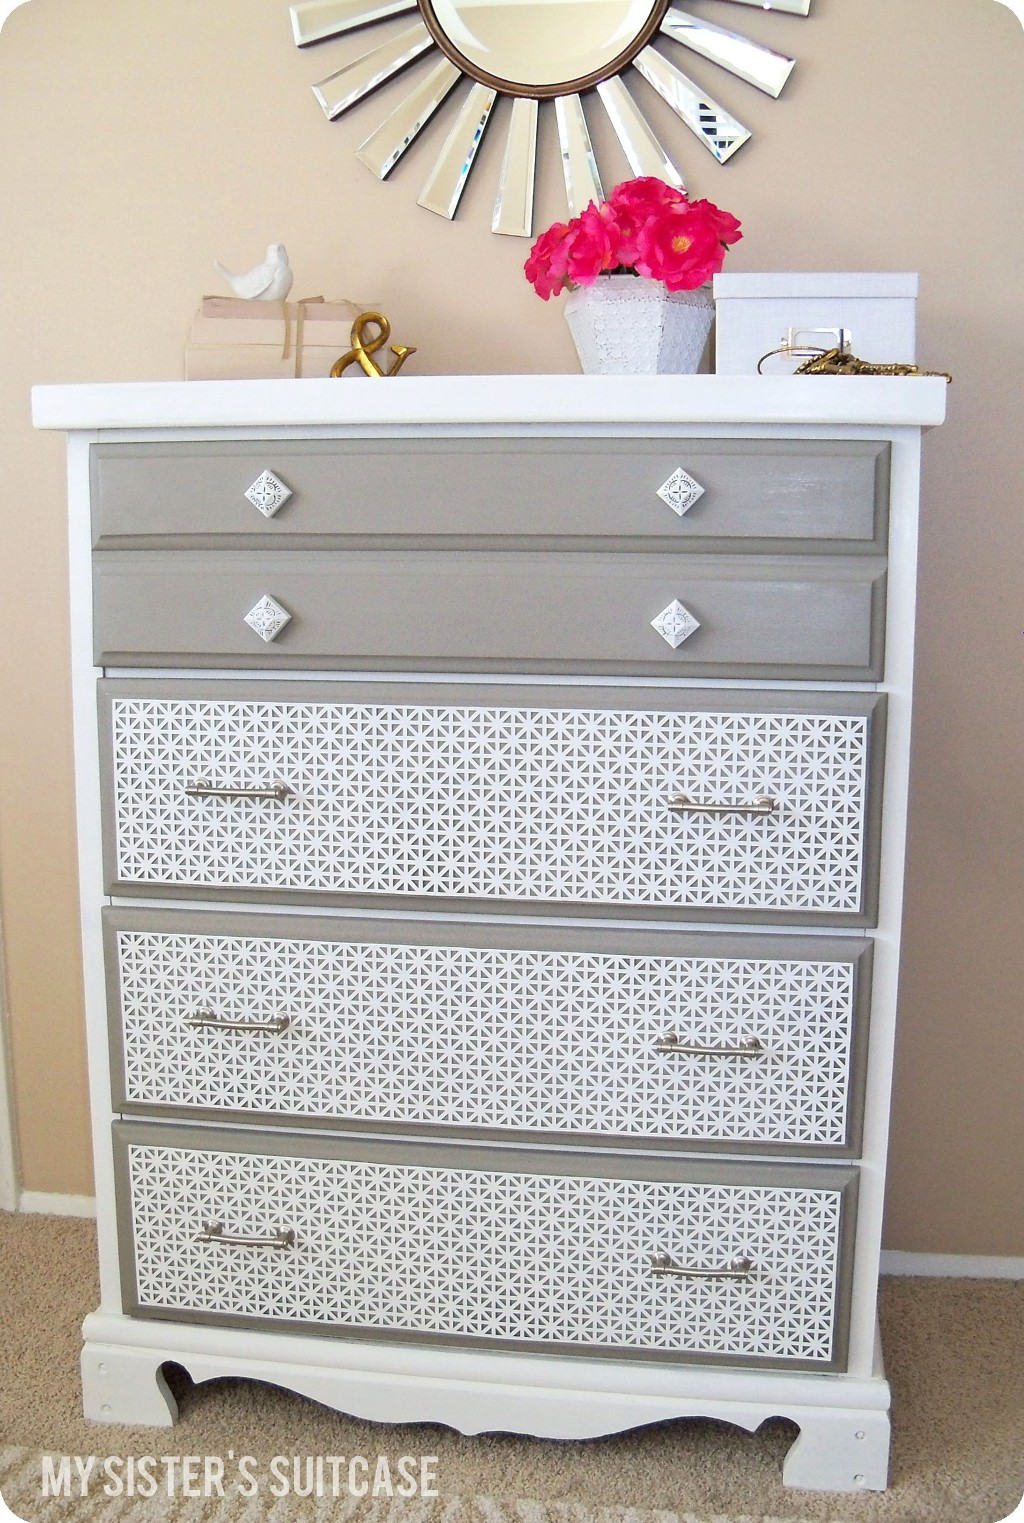 Tool Chest Dresser Makeover: New Twist On An Old Dresser {with Sheet Metal}